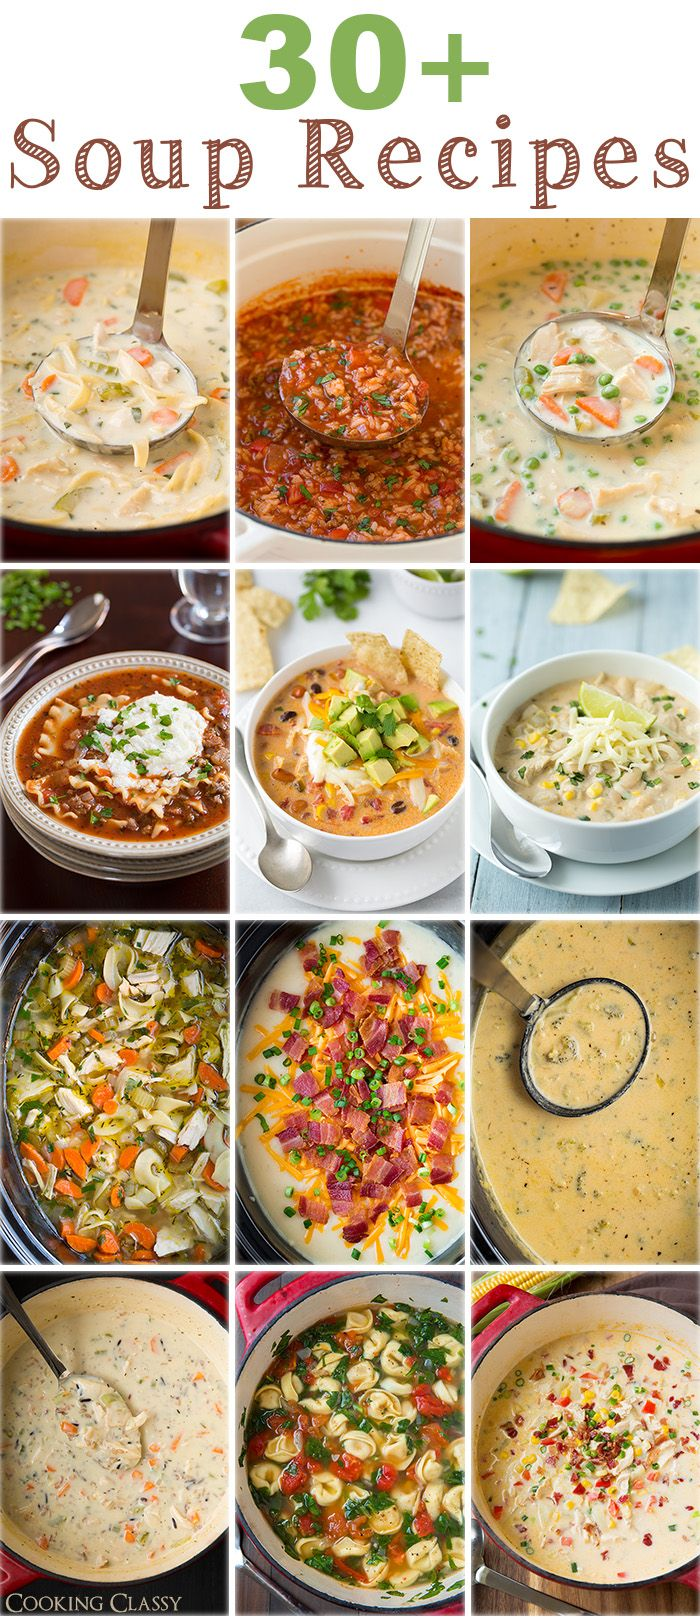 30+ Soup Recipes - Just what you'll need for the cold fall and winter ahead. I love all of them!